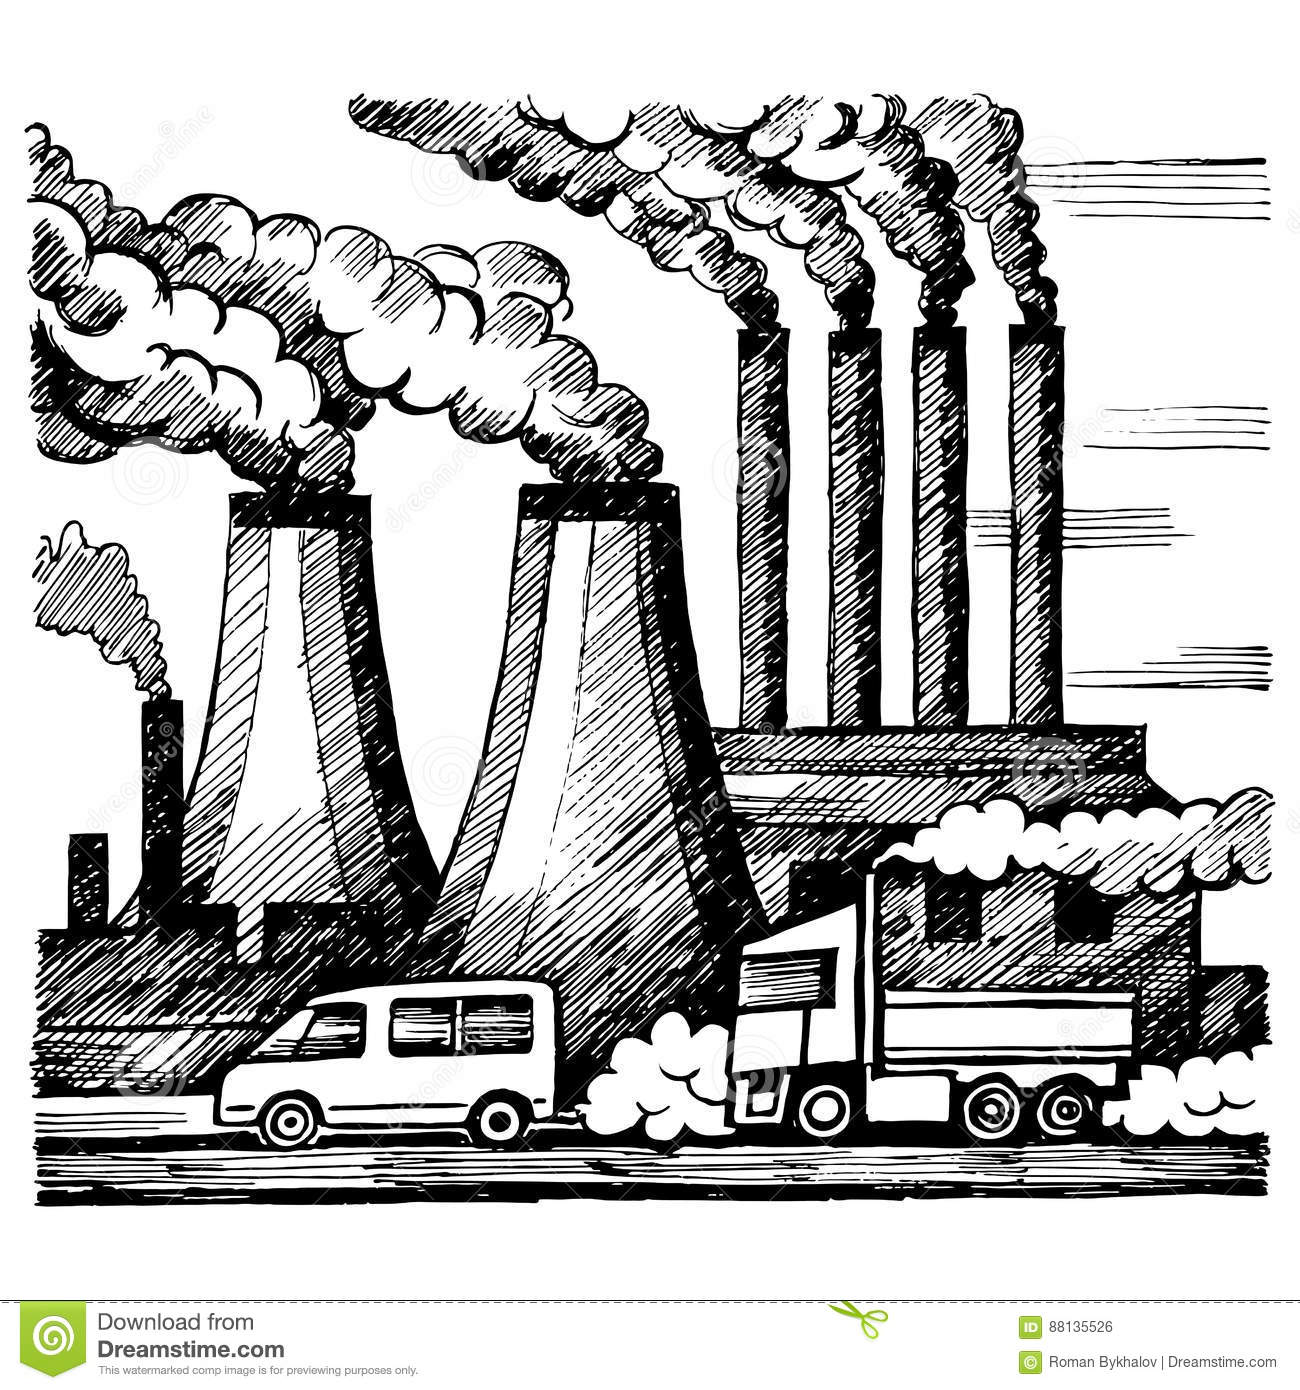 Ecology air and atmosphere pollution emission of harmful gases industry and cars vector sketch illustration doodle style